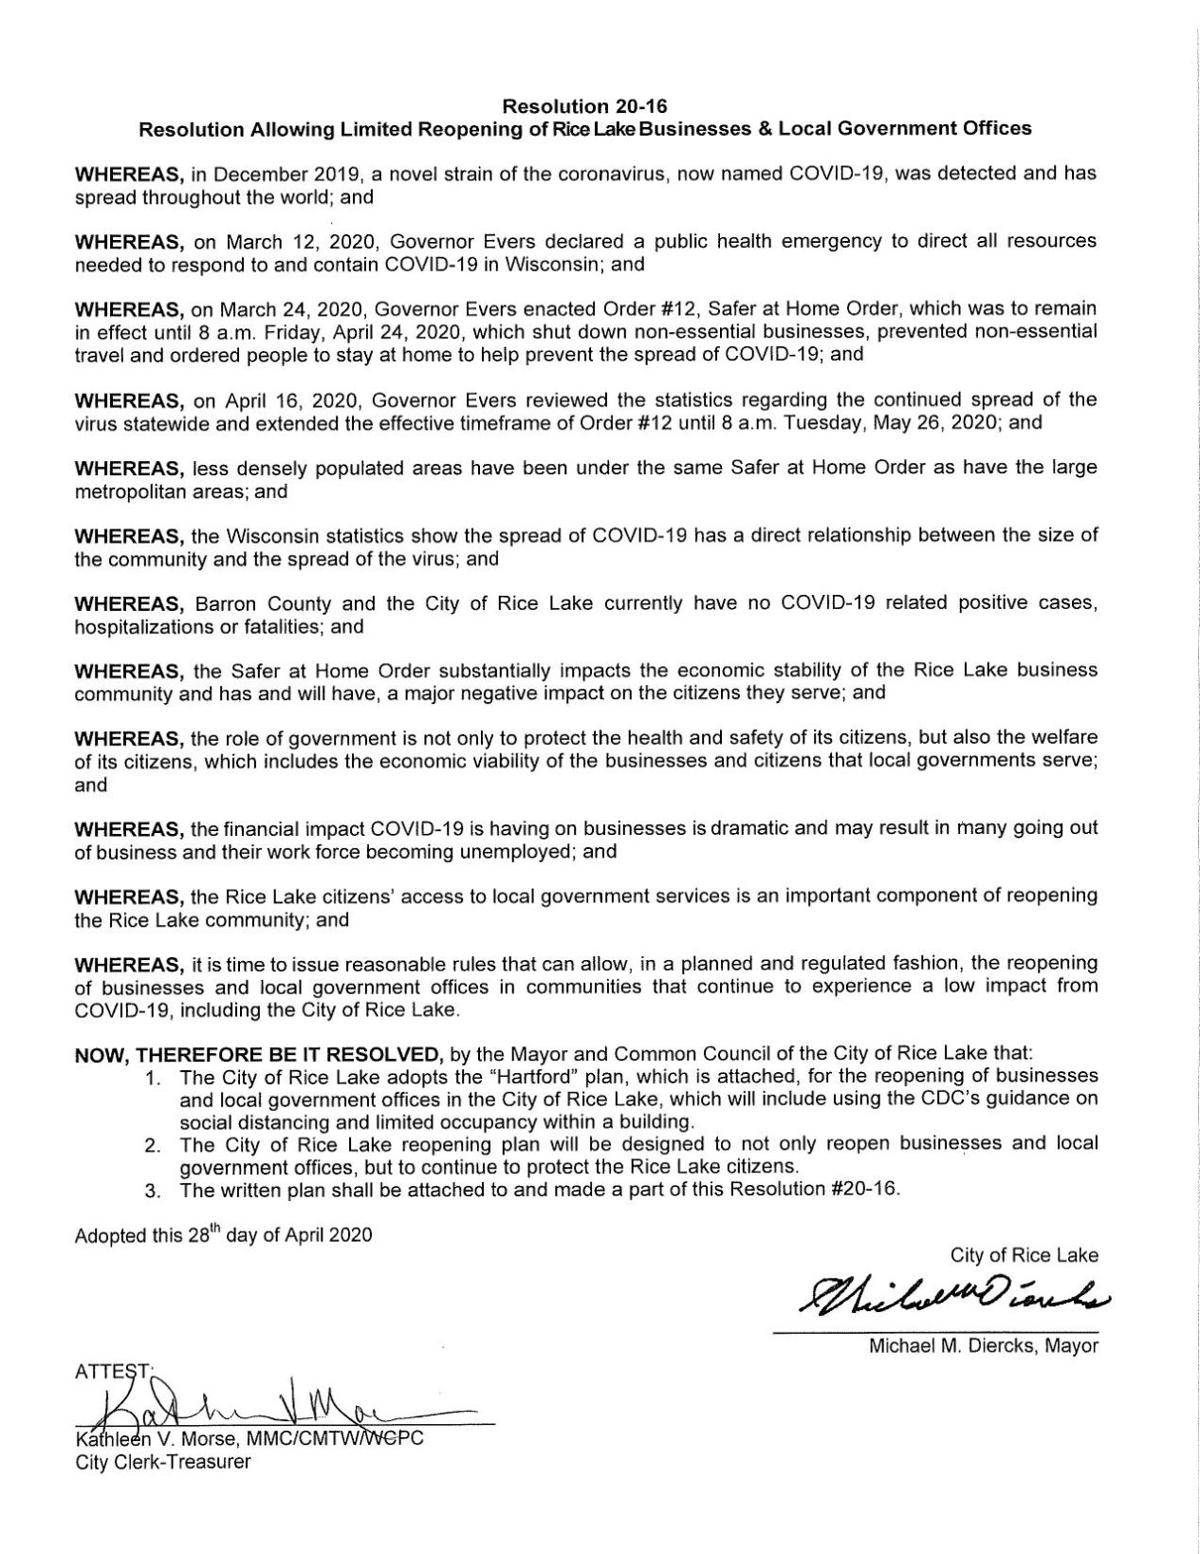 Resolution 20-16, Allowing Limited Reopening of RIce Lake Businesses and Local Govt Offices.Apr20.pdf